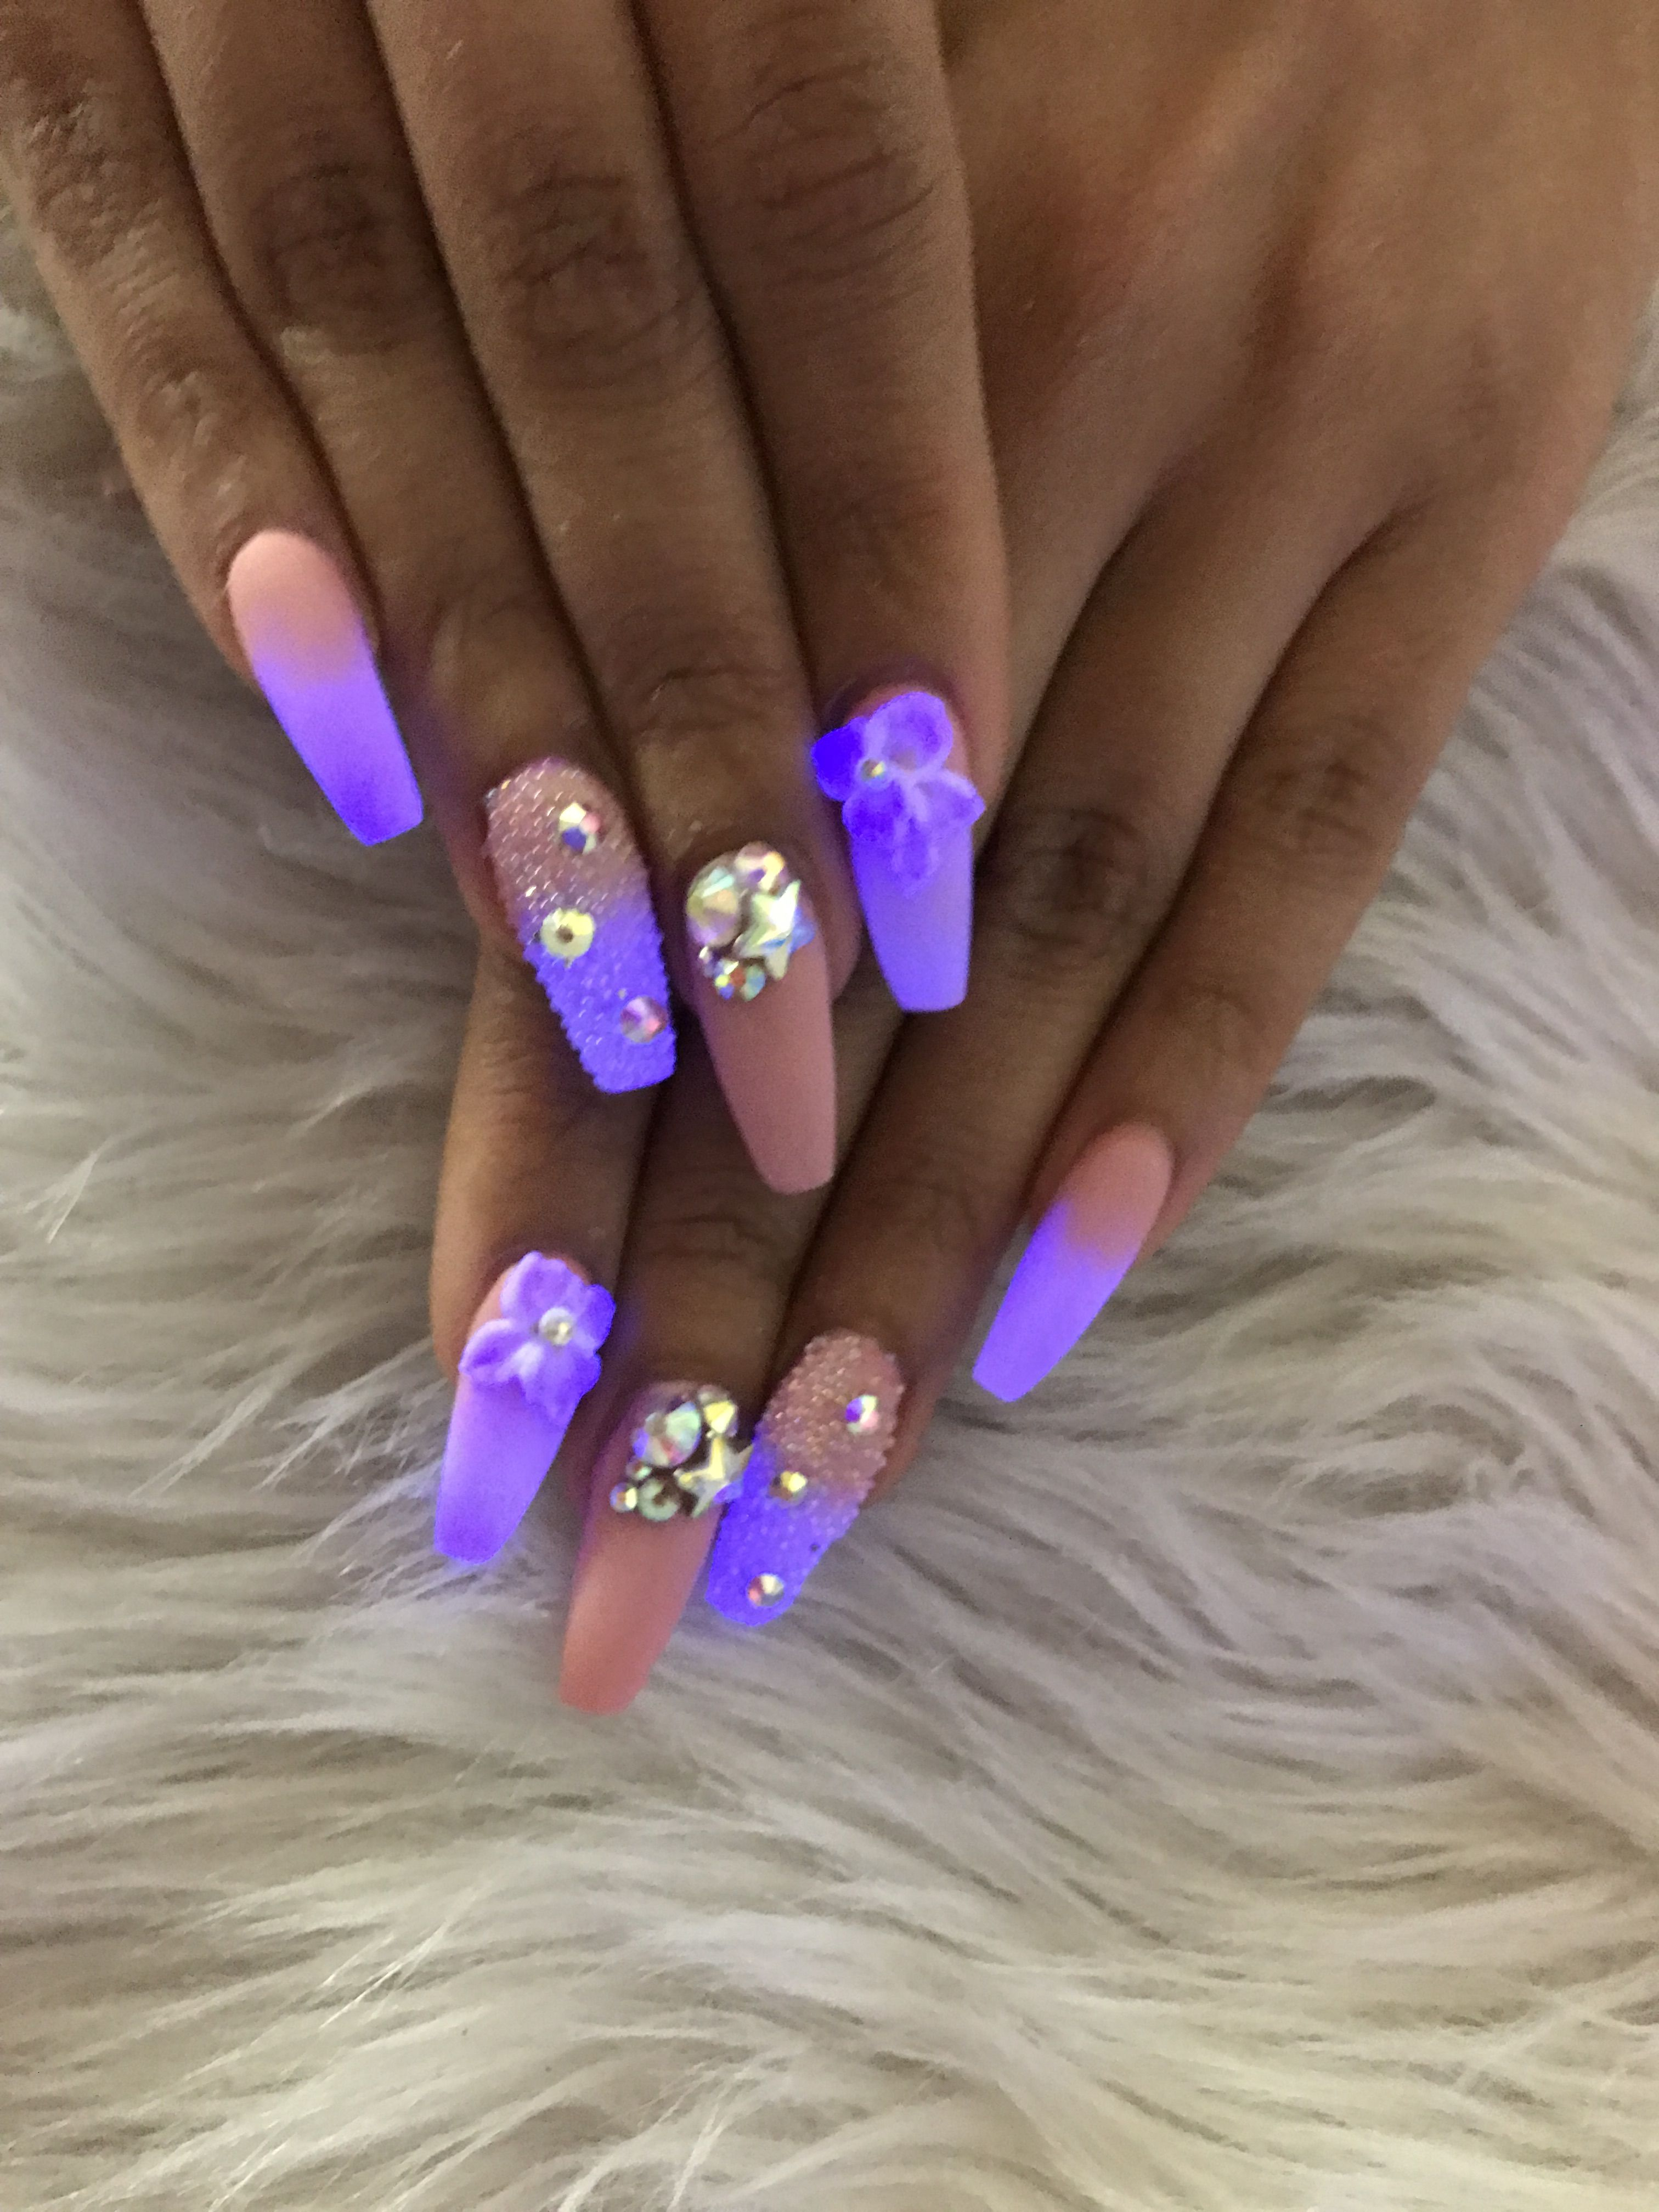 Glow In The Dark Nails By Donny At 6210 Annapolis Rd Hyattsville Md 20784